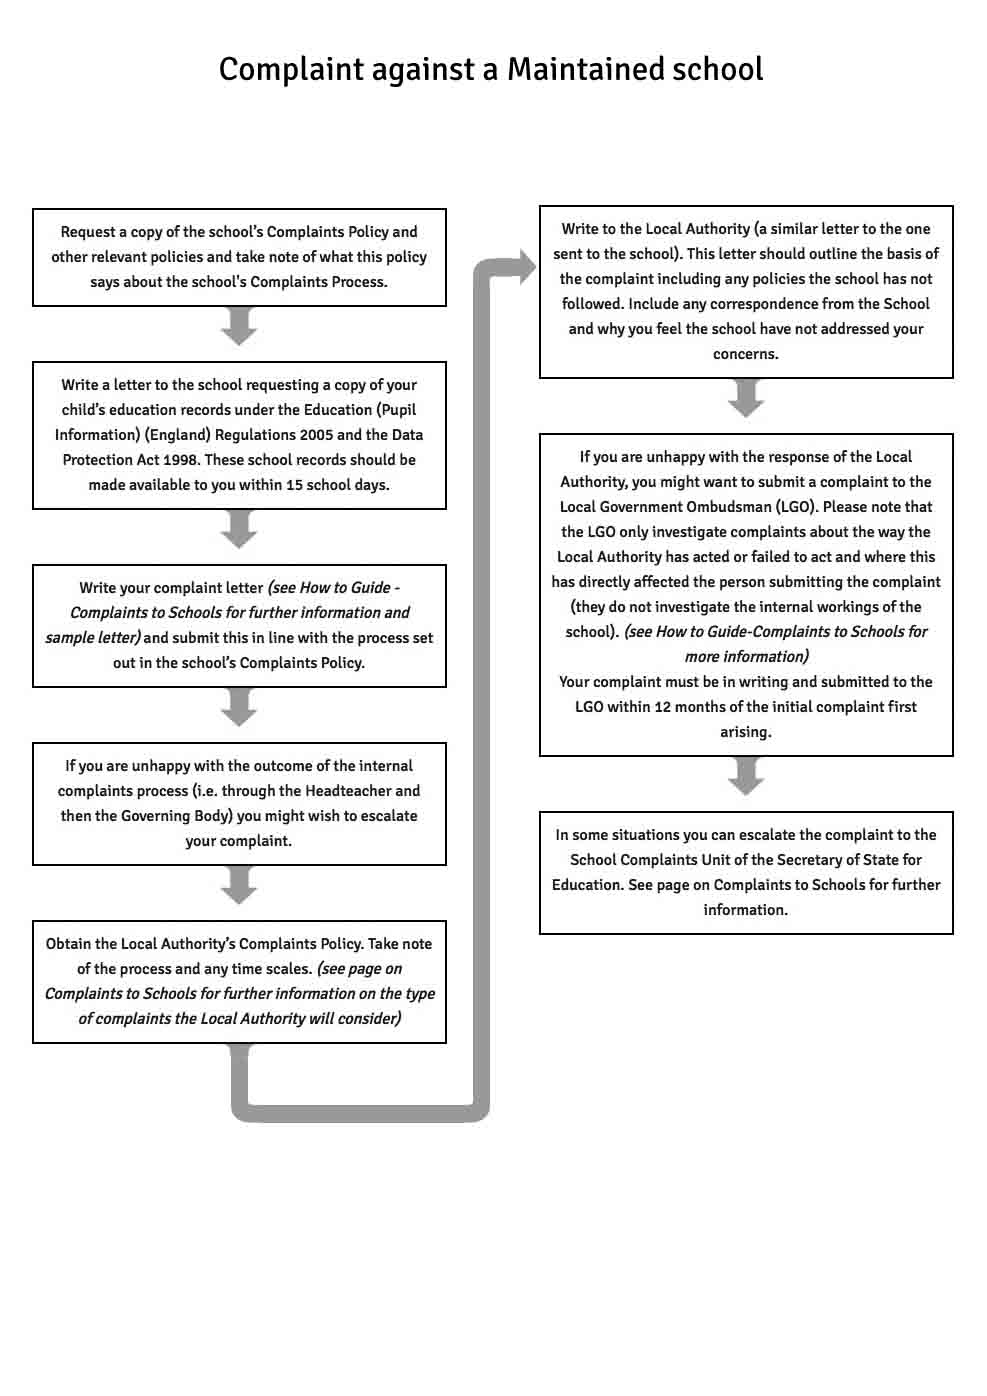 complaints to maintained schools complaint against a maintained school flowchart